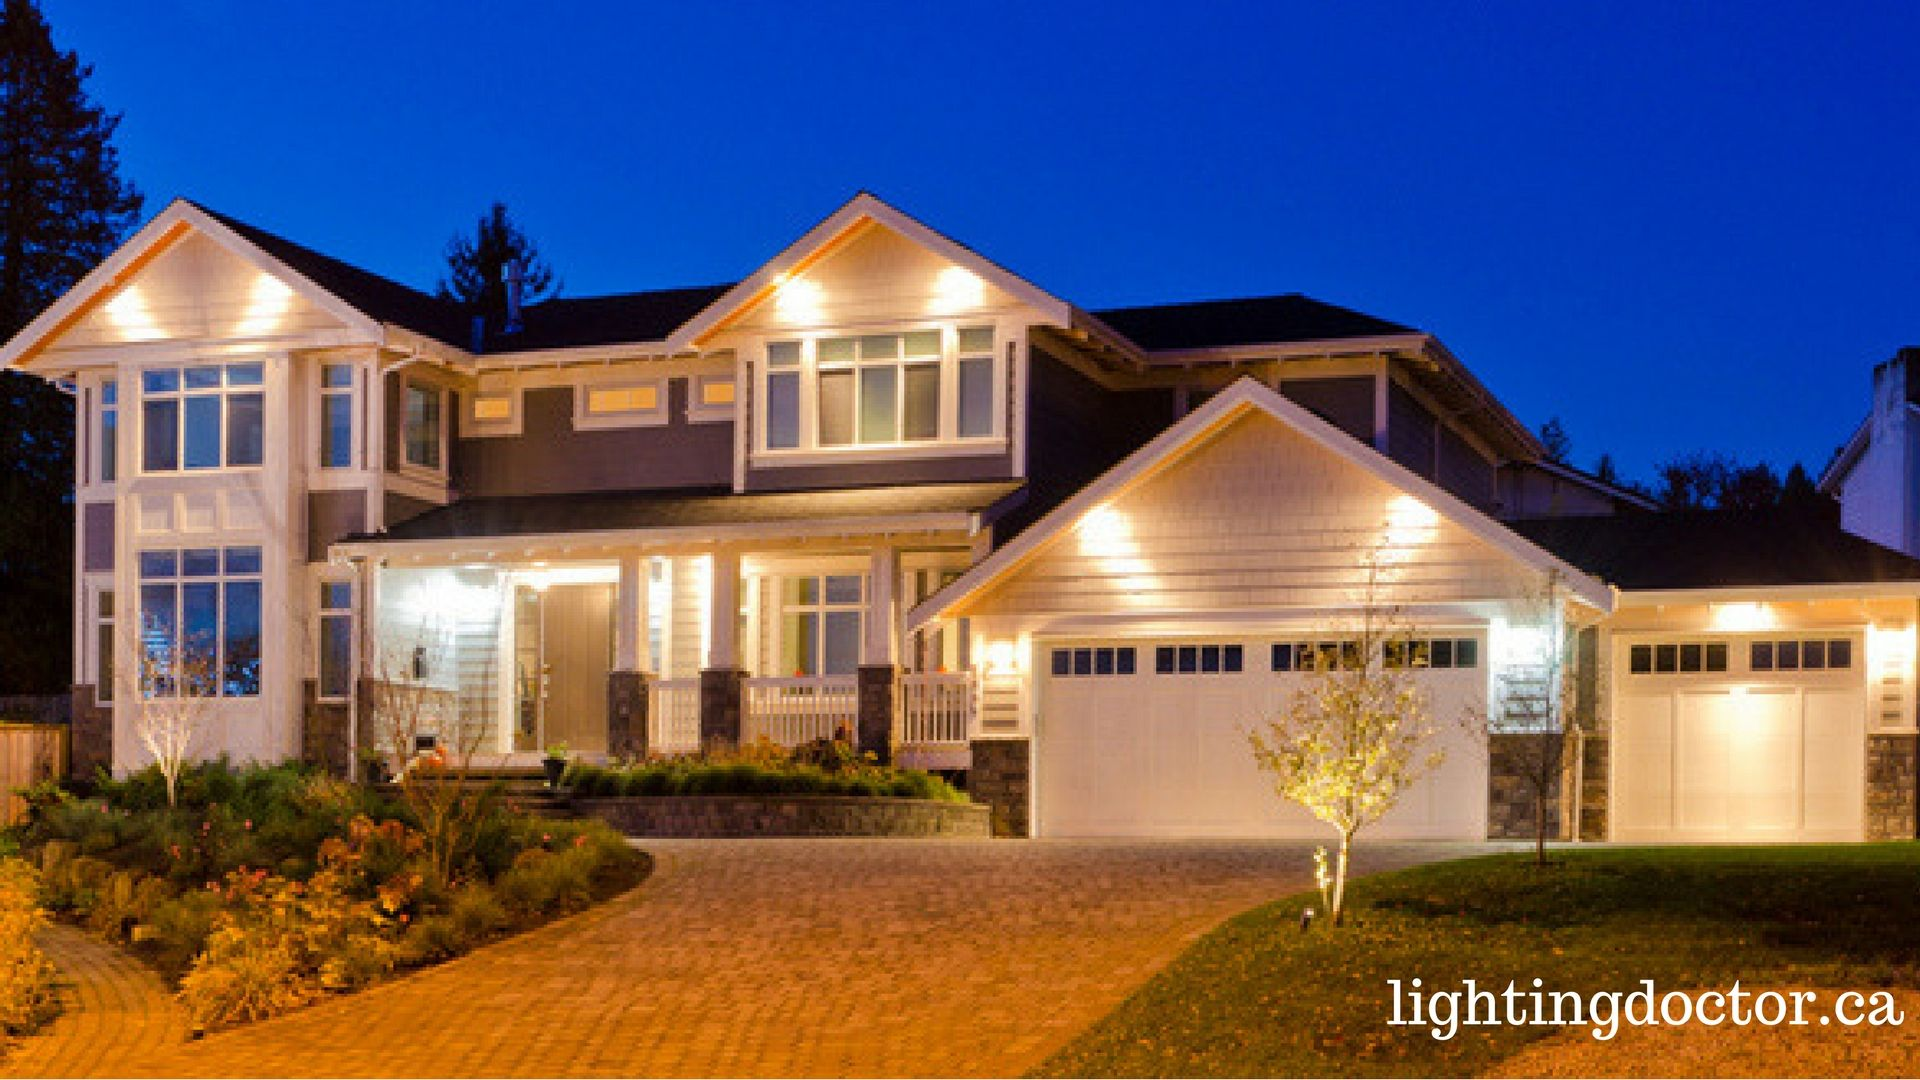 Outdoor Home Lighting Best Reinforce Outdoor Lighting Canada #outdoorlightingcanada 2018